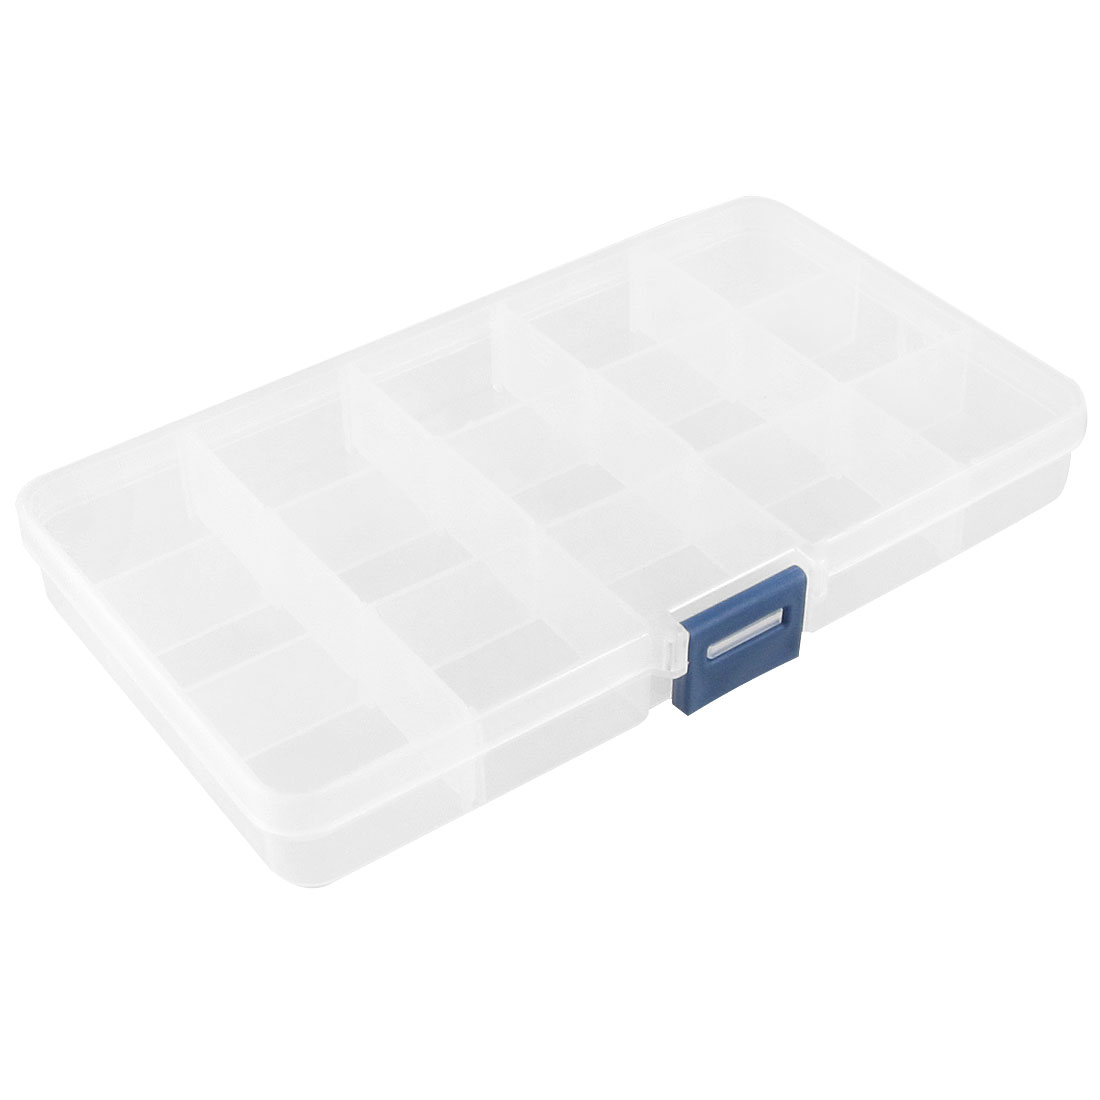 Clear White Plastic 15 Slots Electronic Components Storage Case Box Organizer